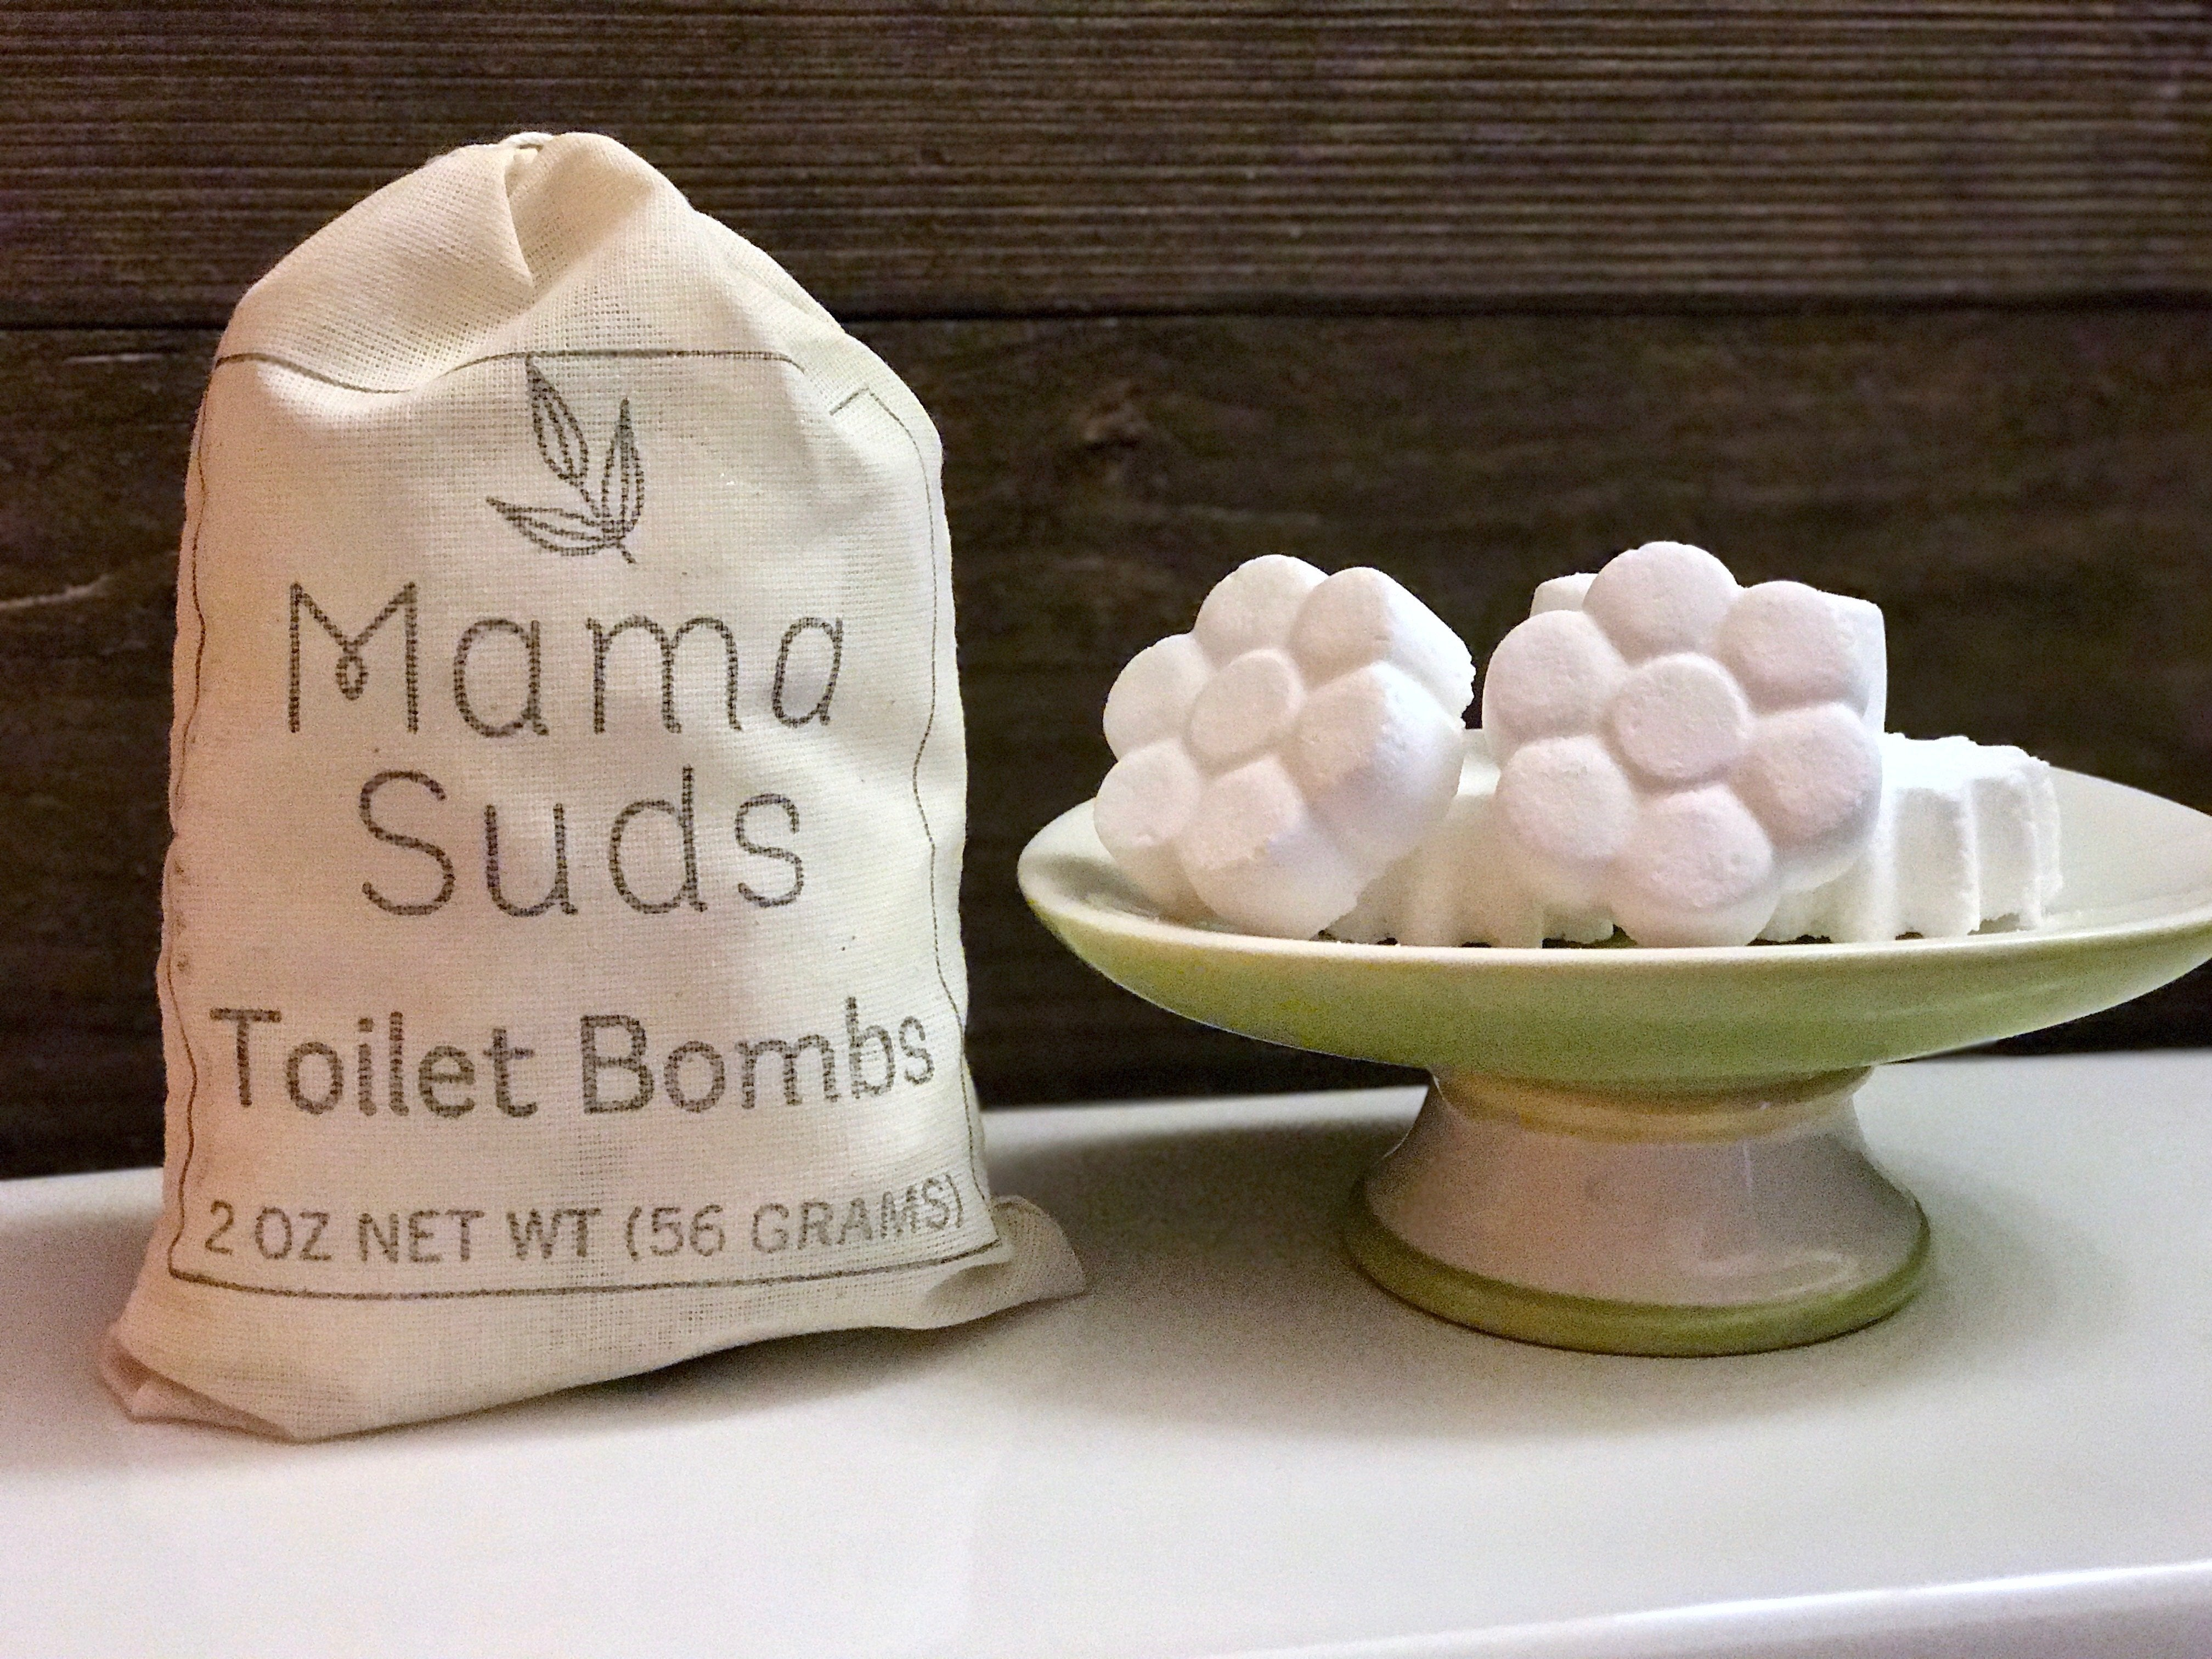 Toilet Bombs cleaning tablets